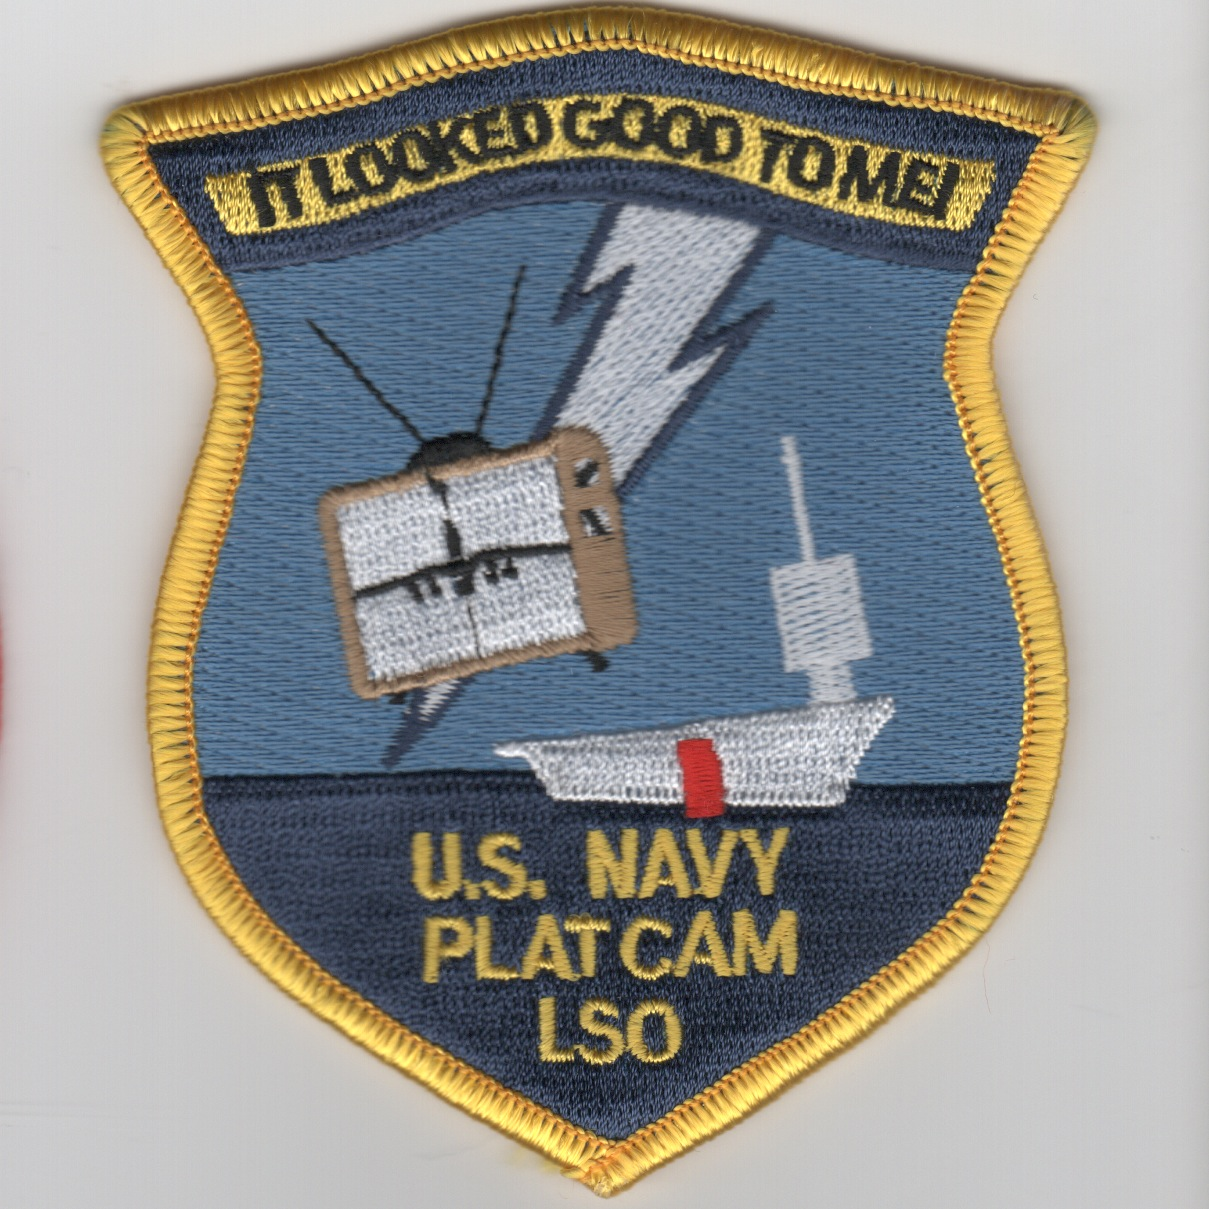 VAQ-137 PLAT-CAM LSO Patch